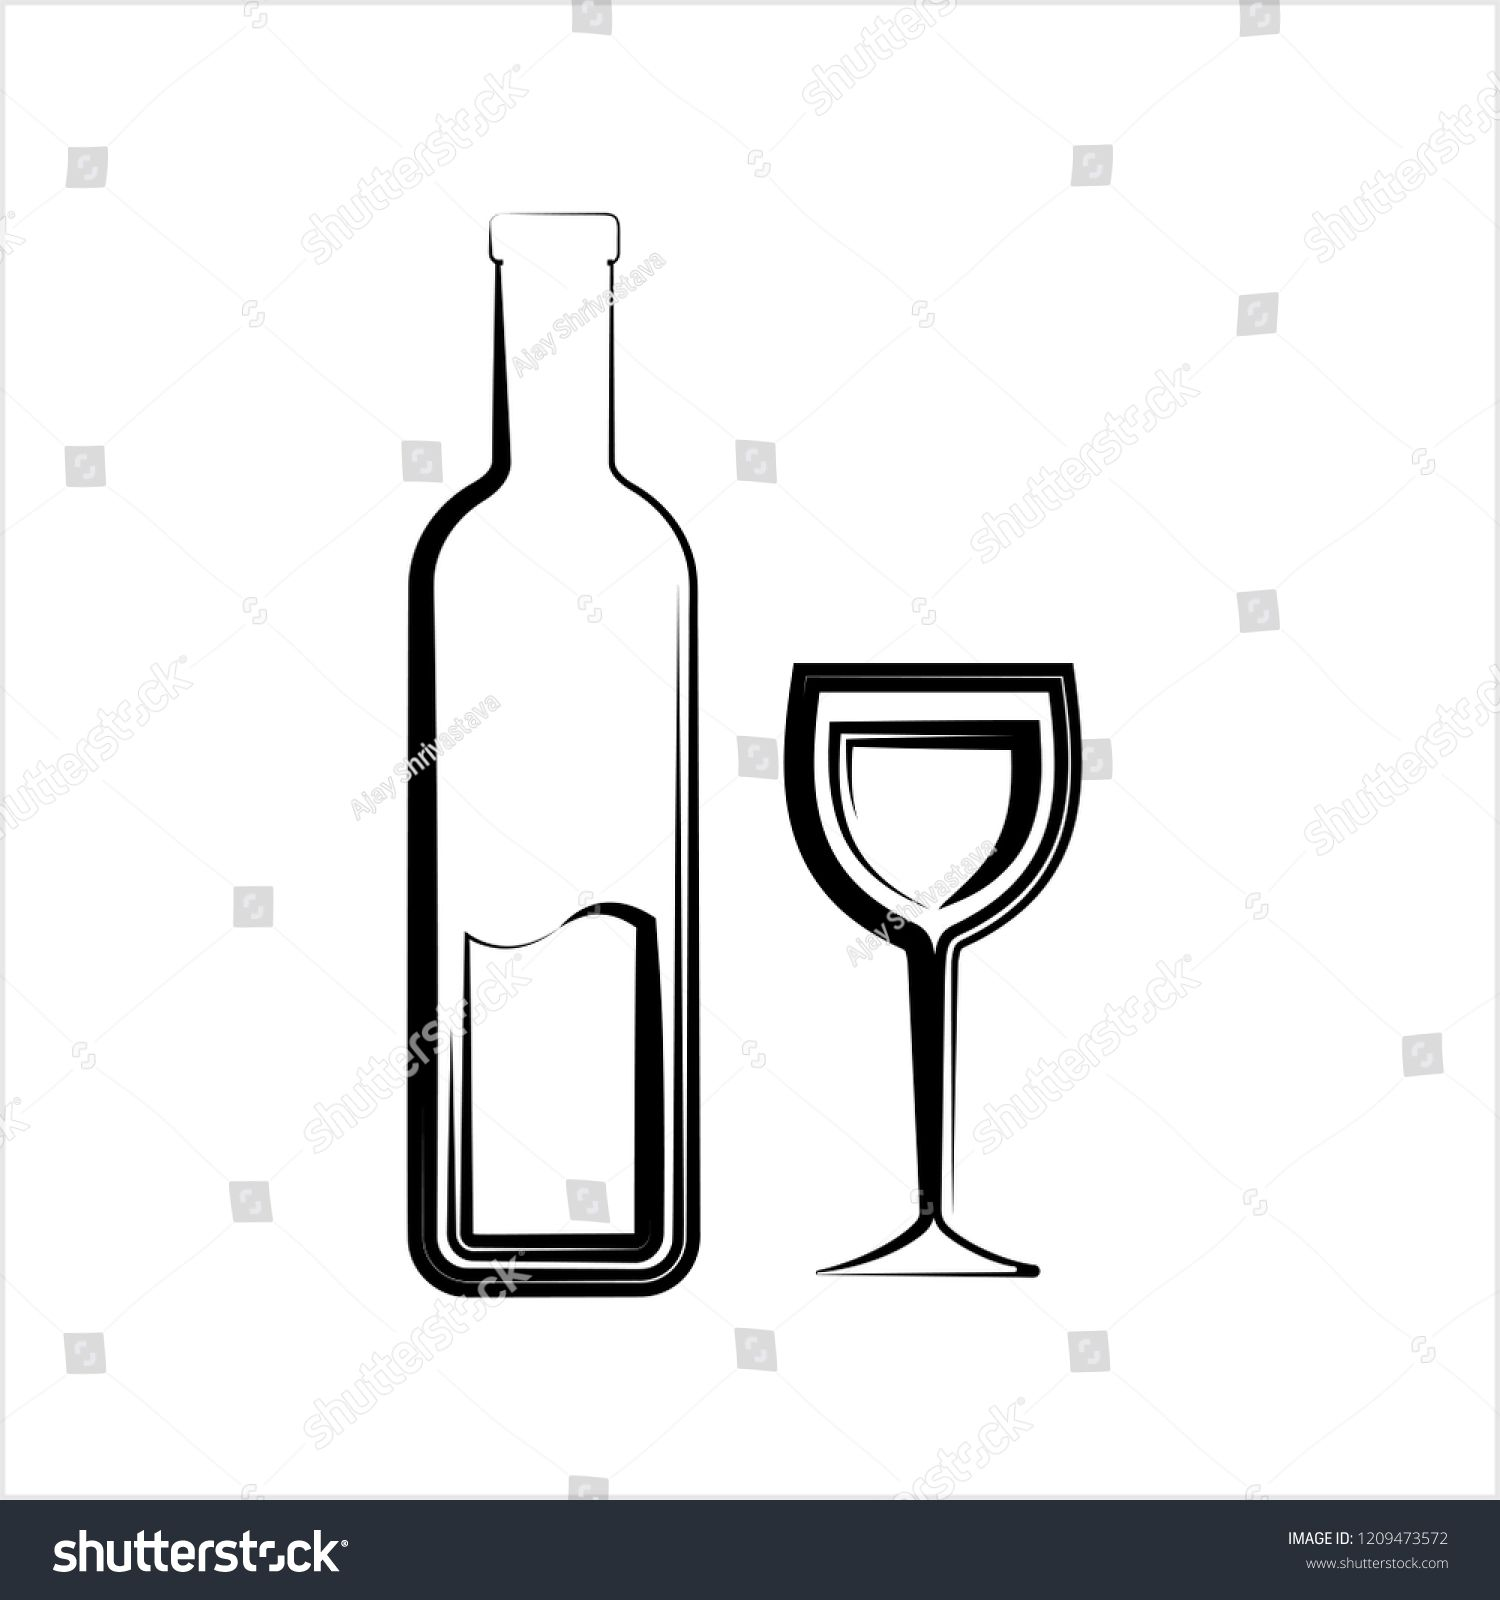 Bottle Of Wine And Glass Vector Art Illustration Ad Ad Glass Wine Bottle Illustration Vector Art Illustration Wine Bottle Illustration Wine Bottle